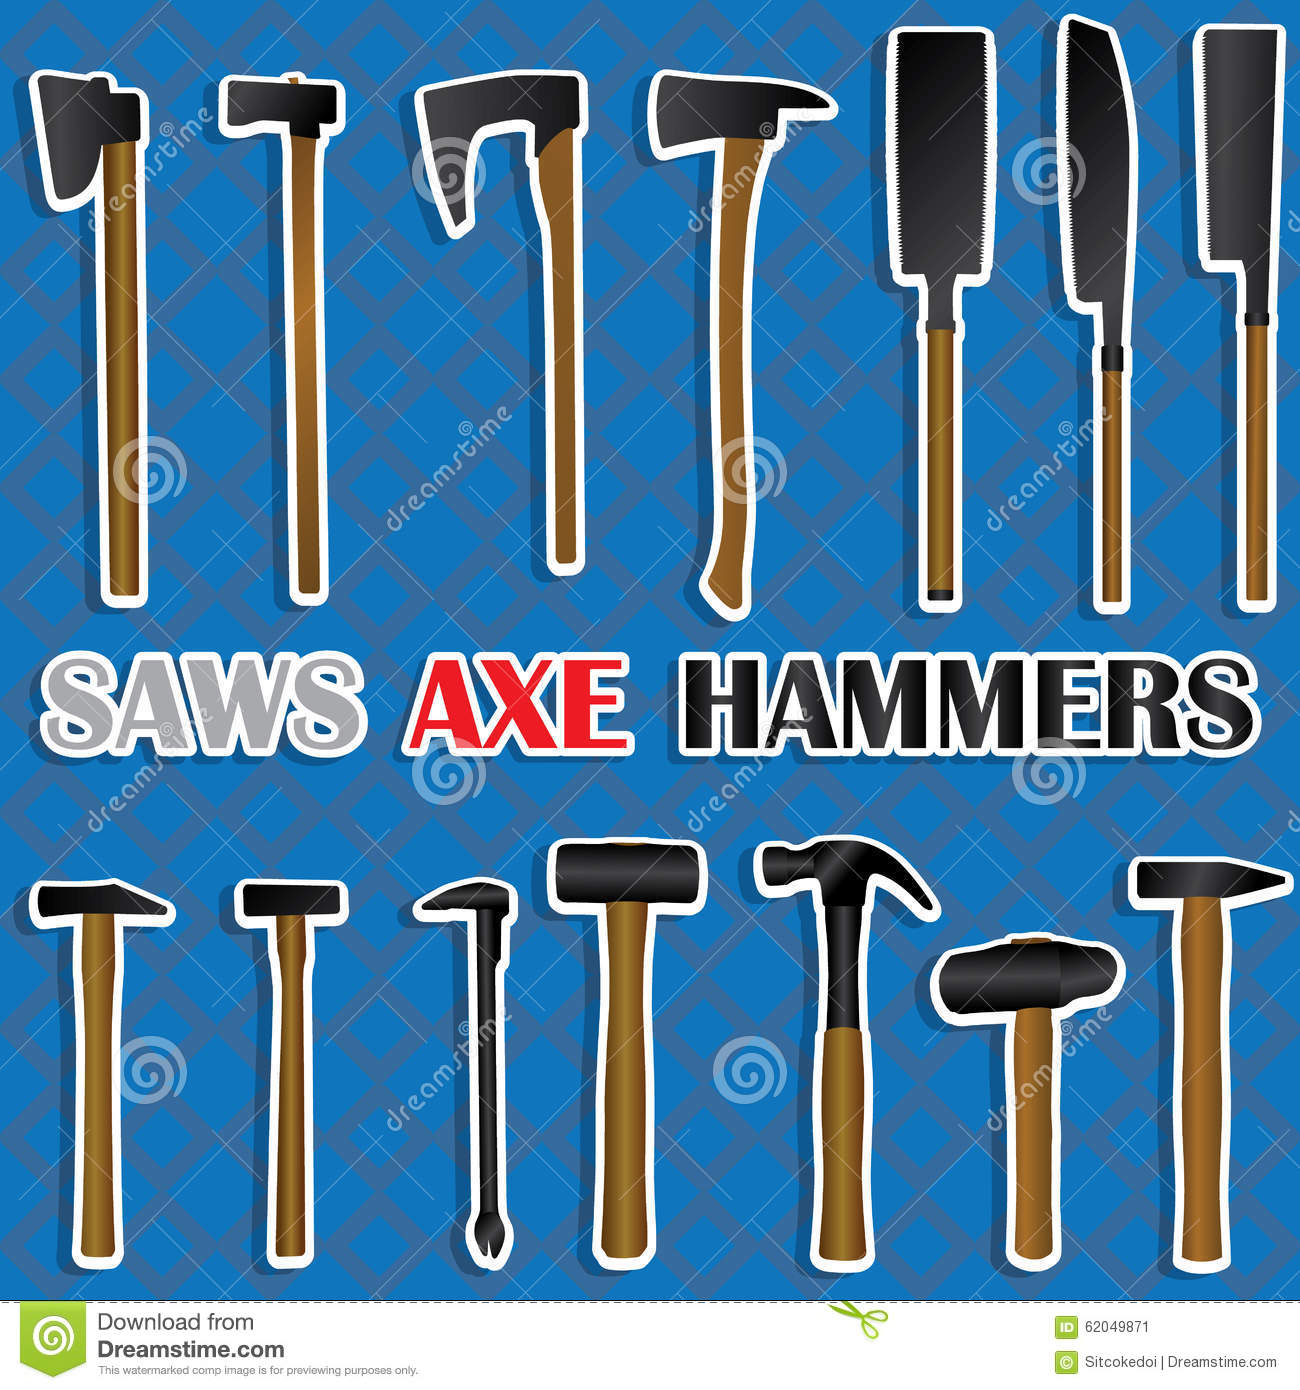 Saws, Hammers, Axes Many Types Stock Vector - Image: 62049871